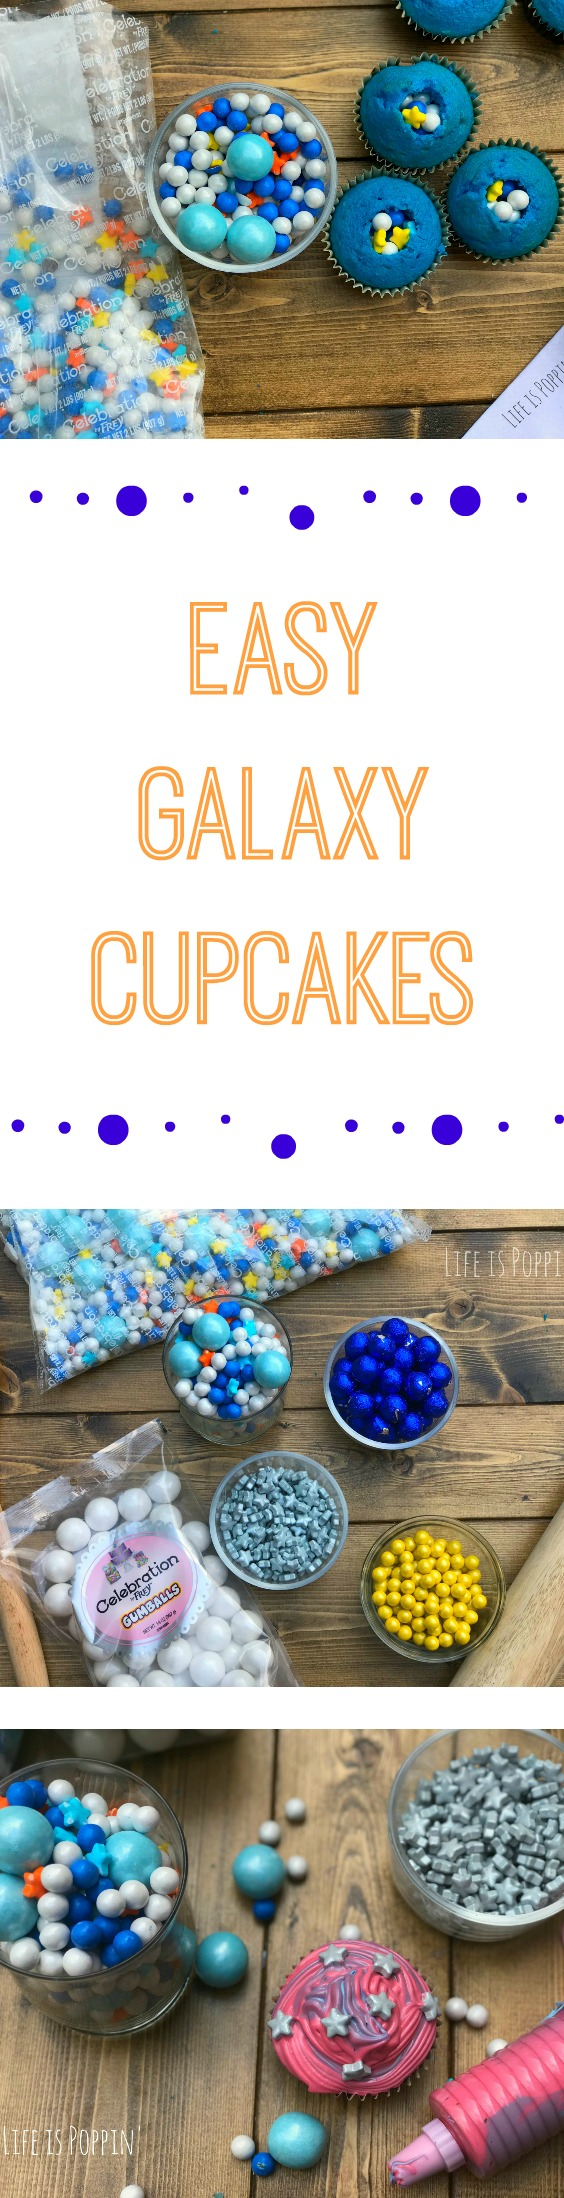 Easy-Galaxy-Cupcakes-Pin